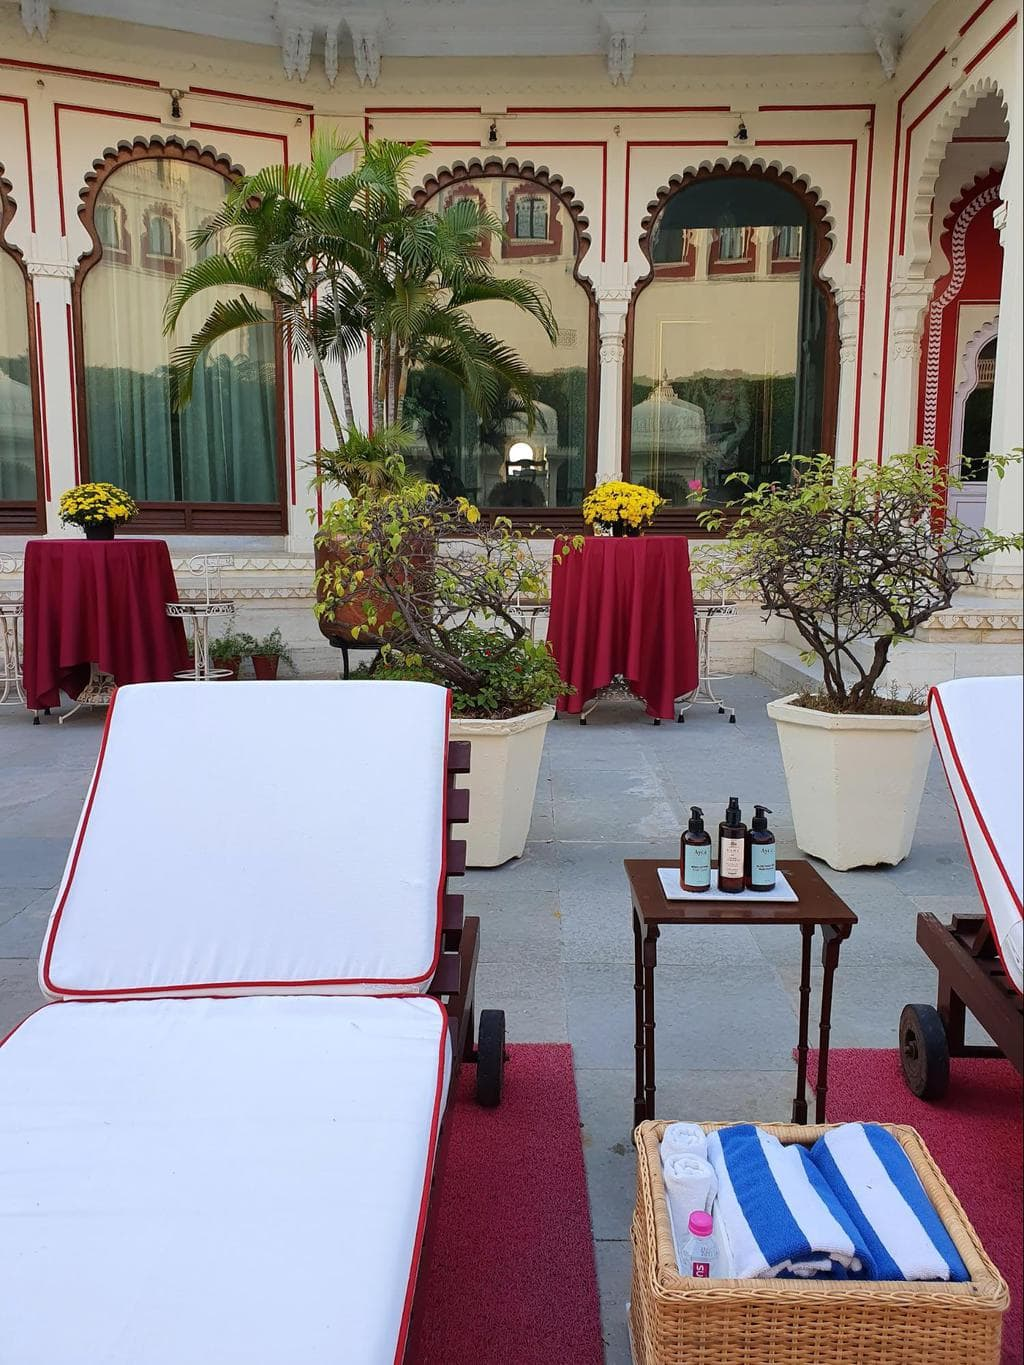 Sun loungers by the pool at Shiv Niwas Palace